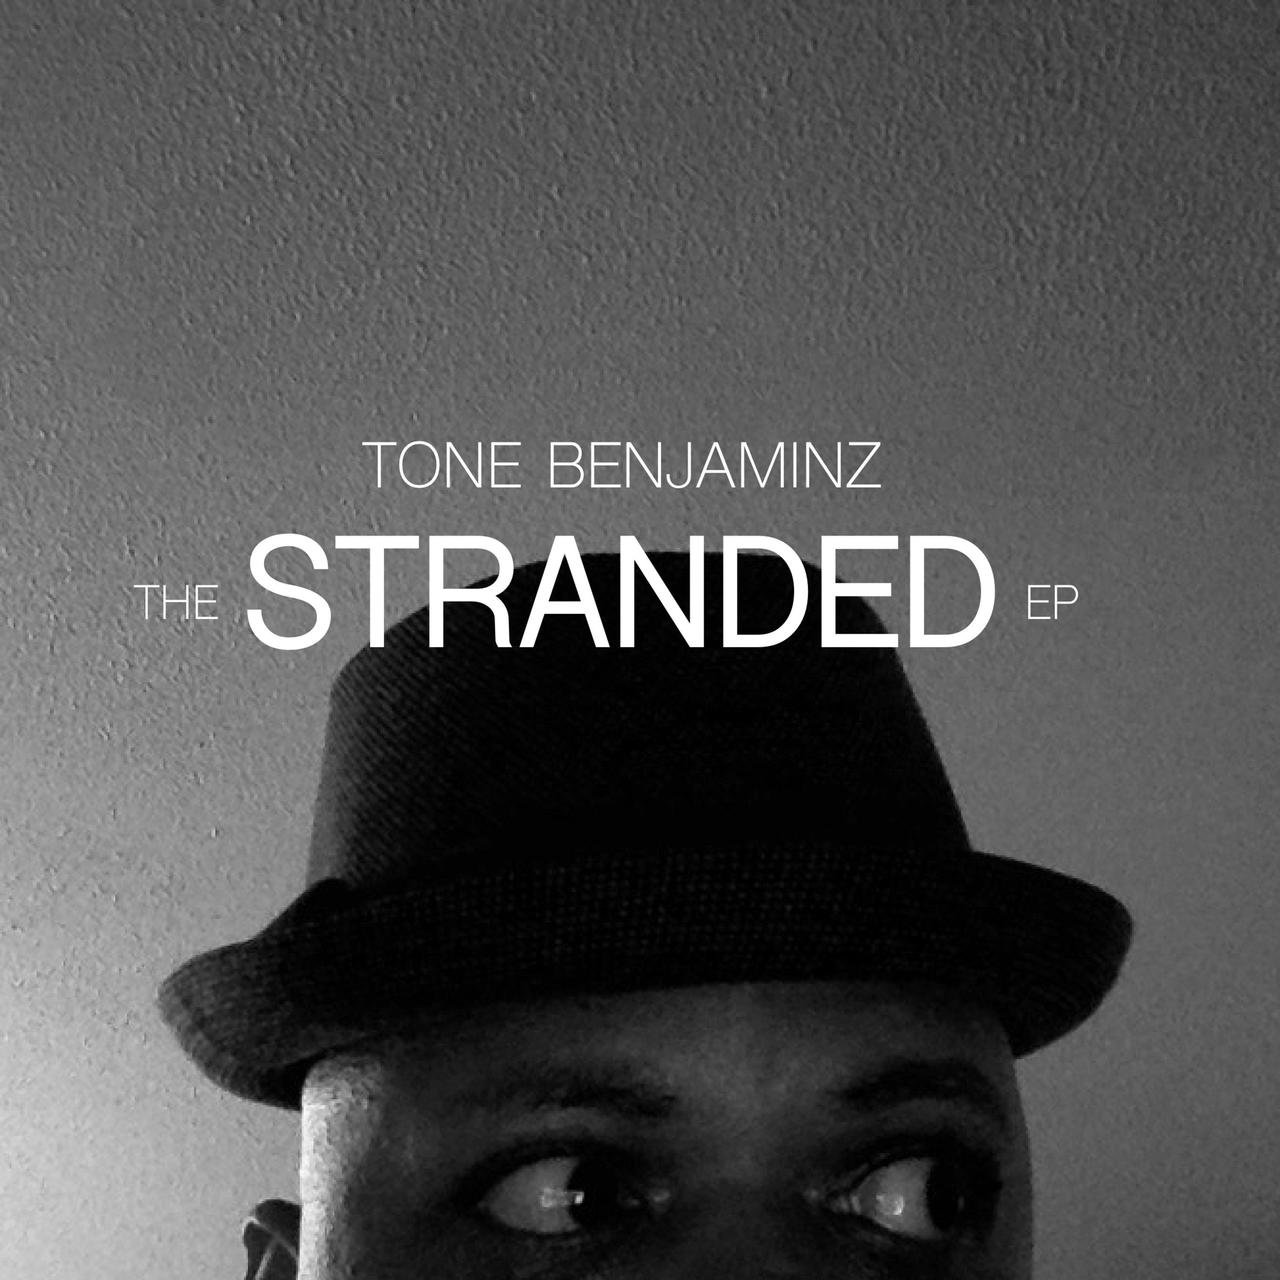 The Stranded EP